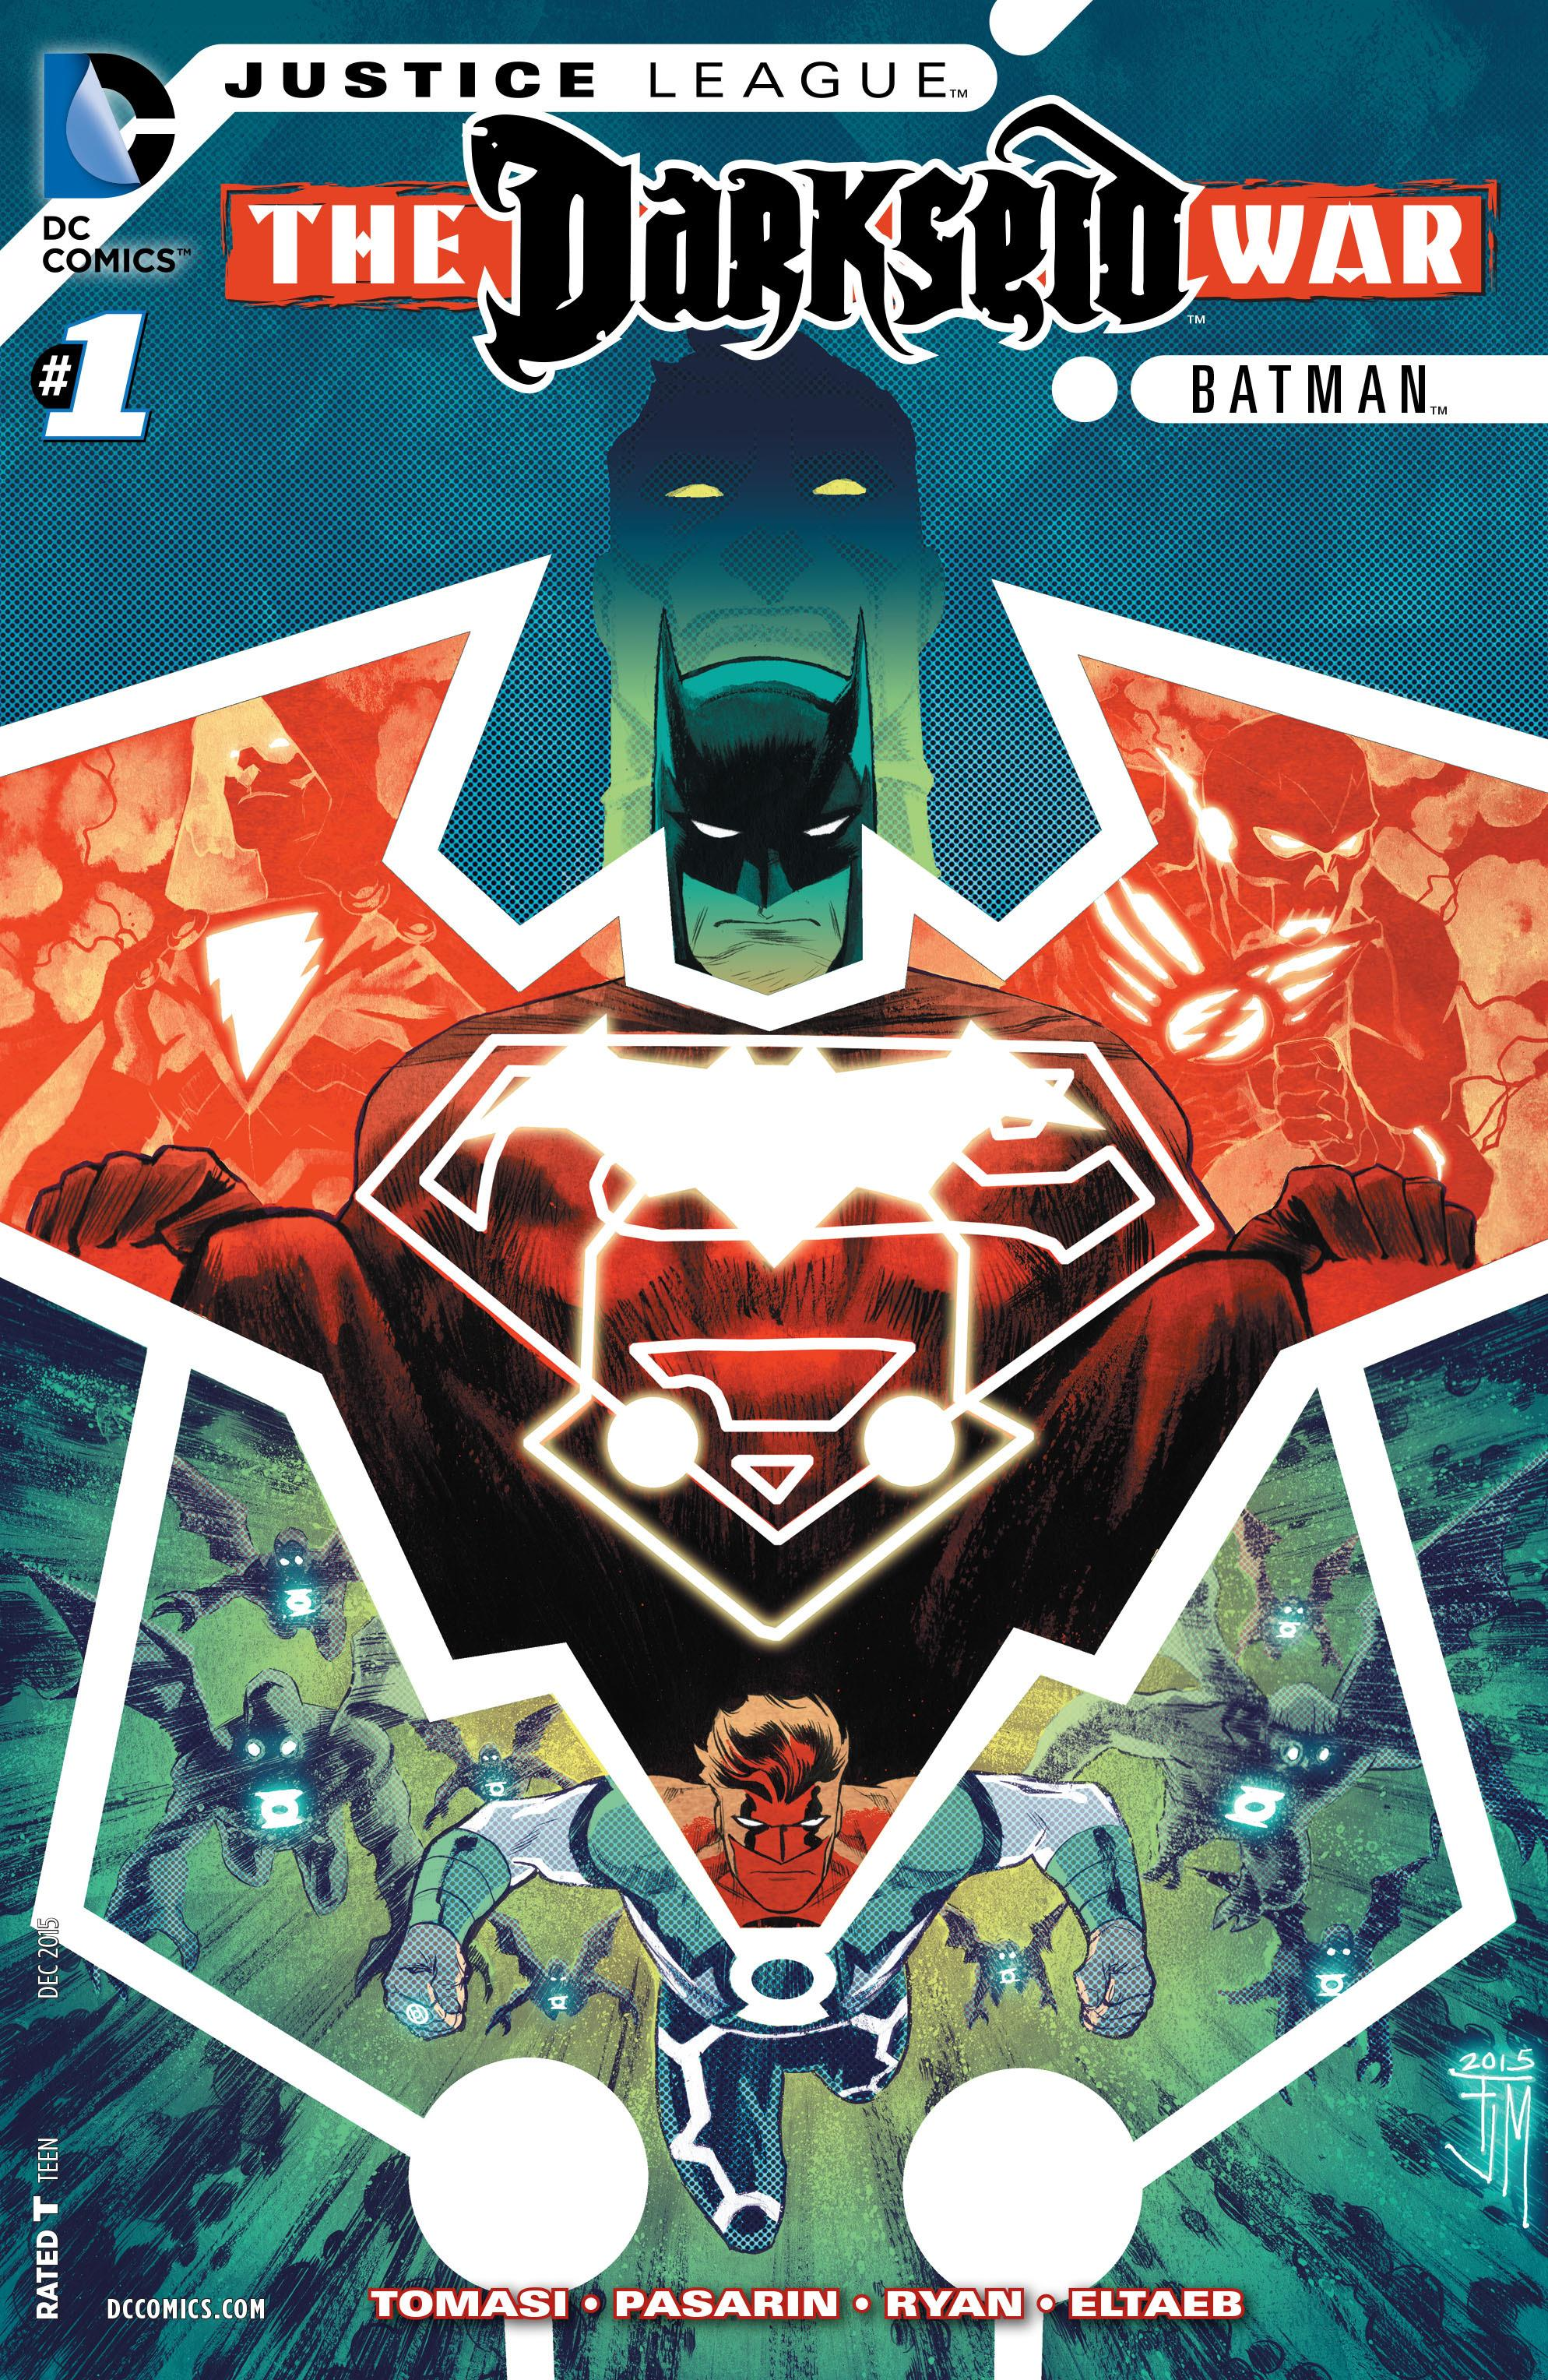 COMIC REVIEW: Justice League: Darkseid War: Batman #1